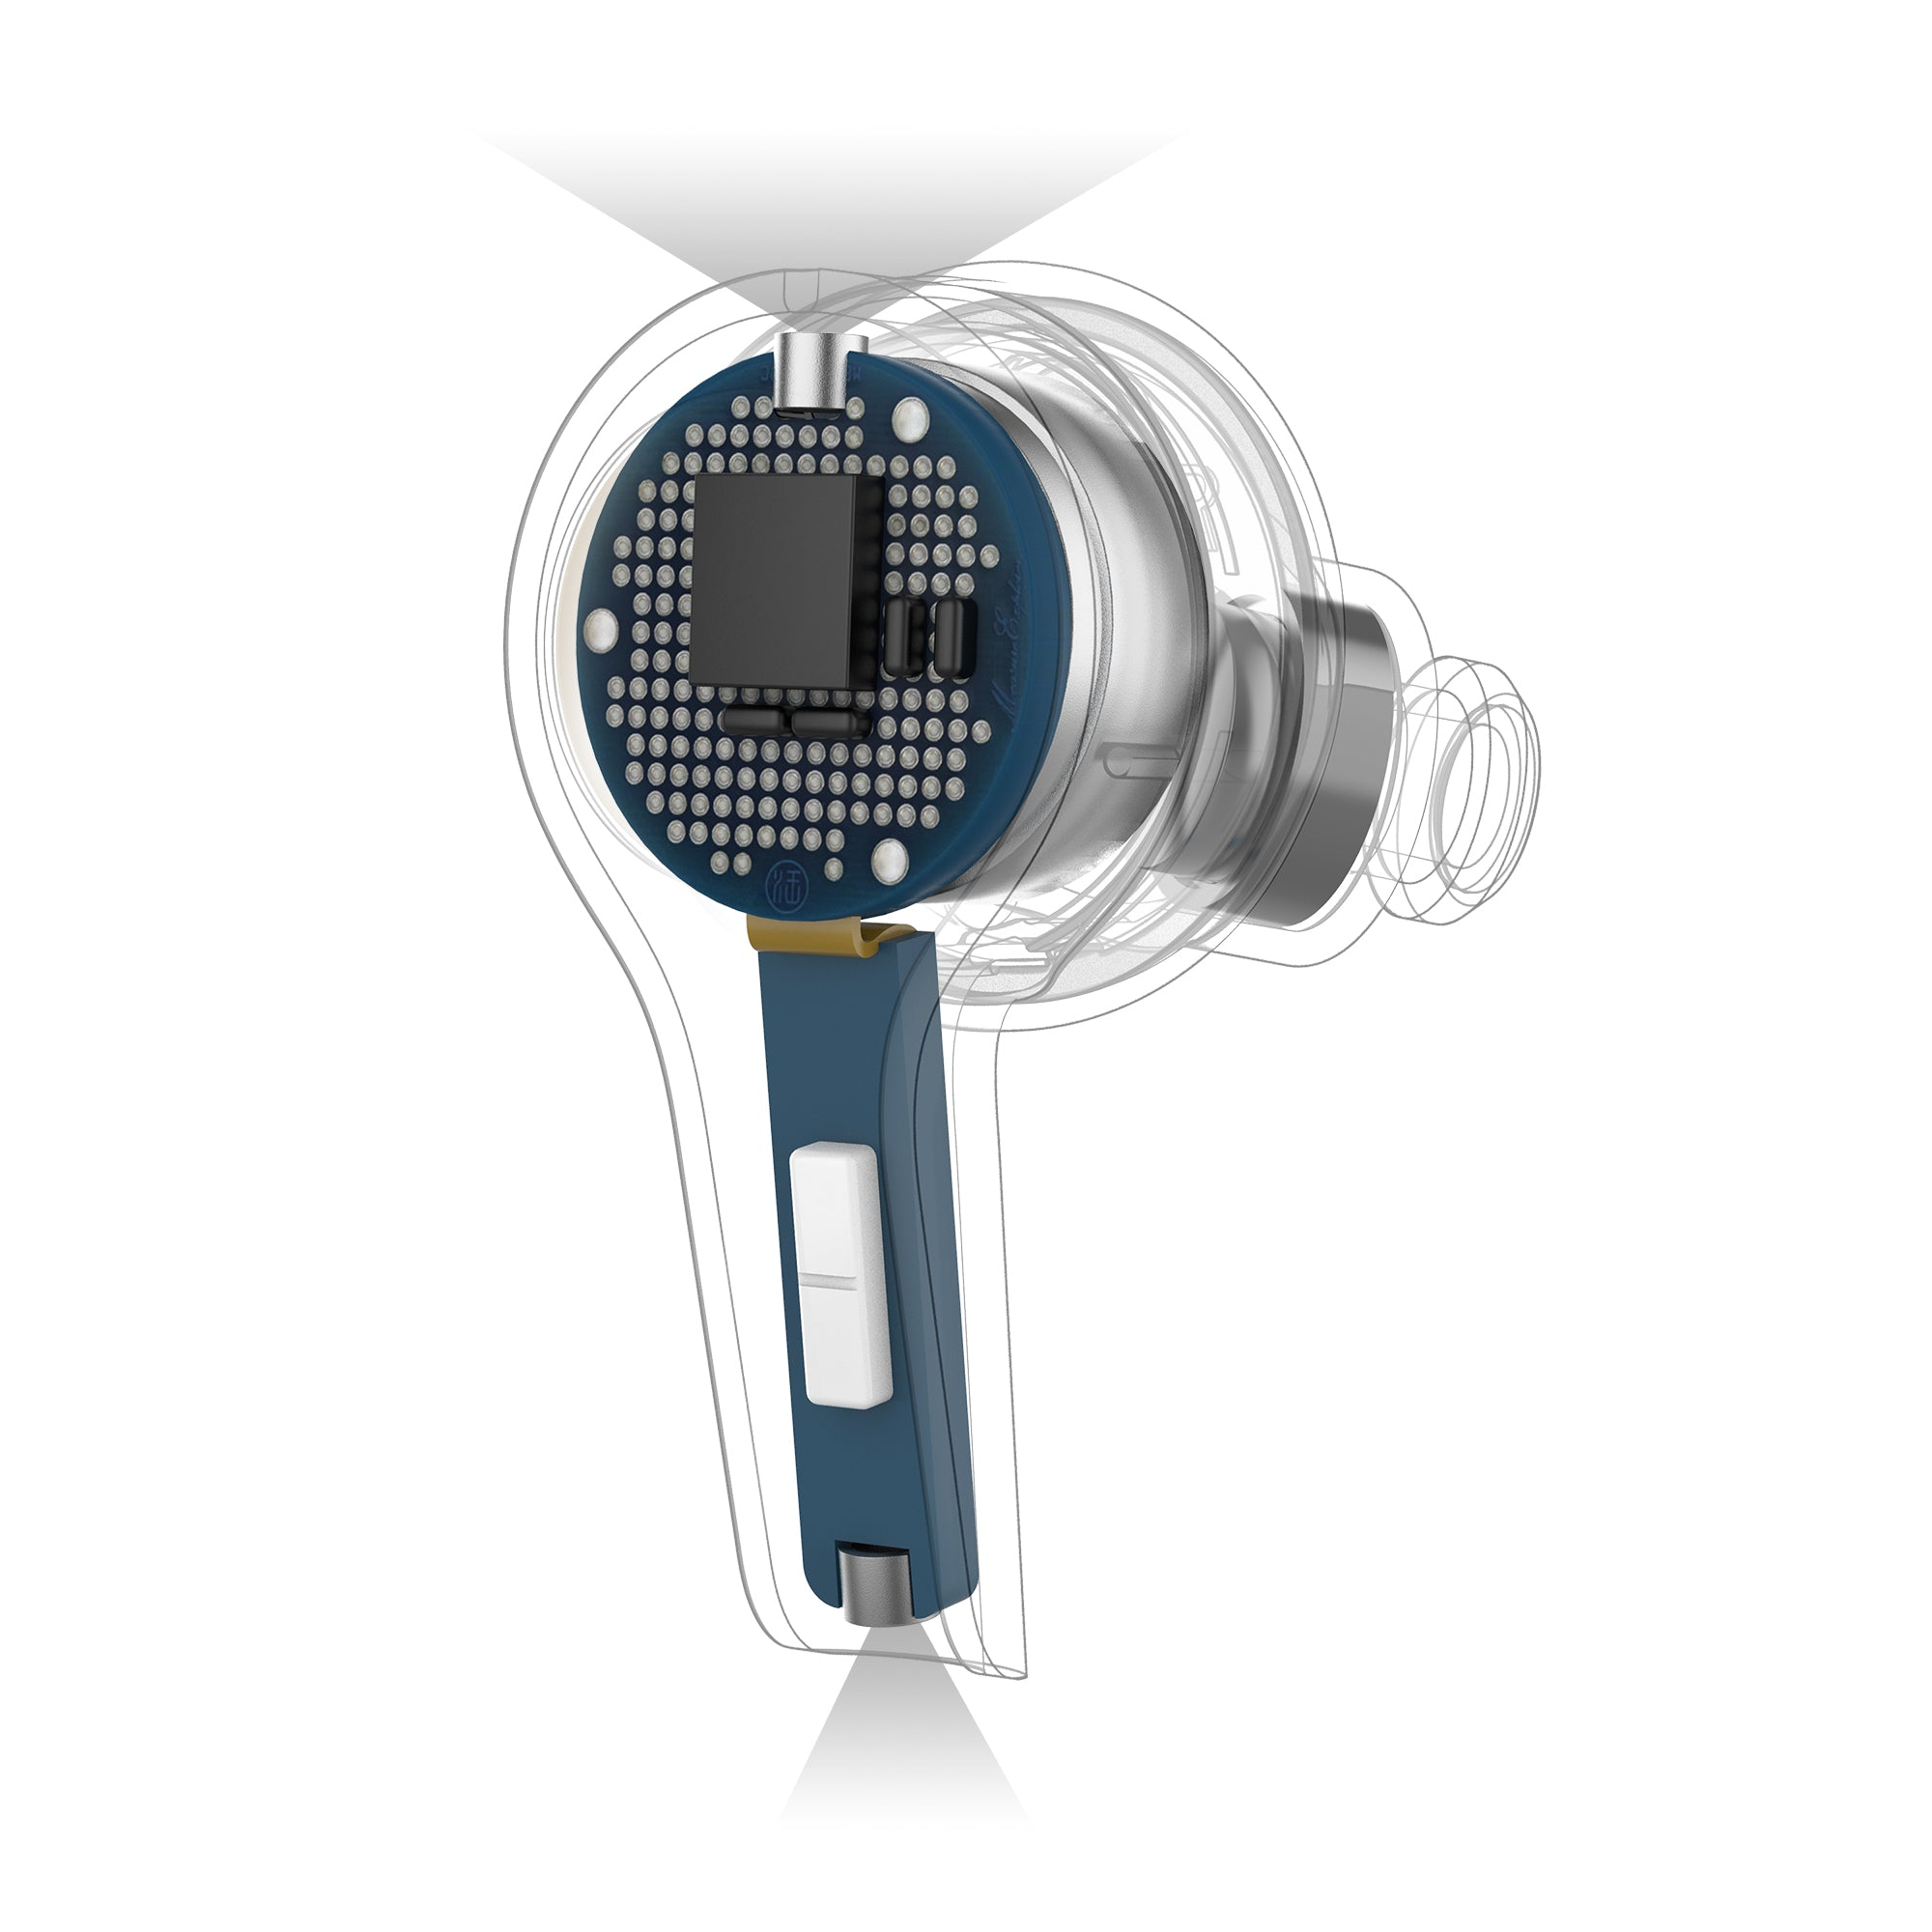 Grafica del posizionamento del microfono in JBuds Air Executive True Wireless Auricolari